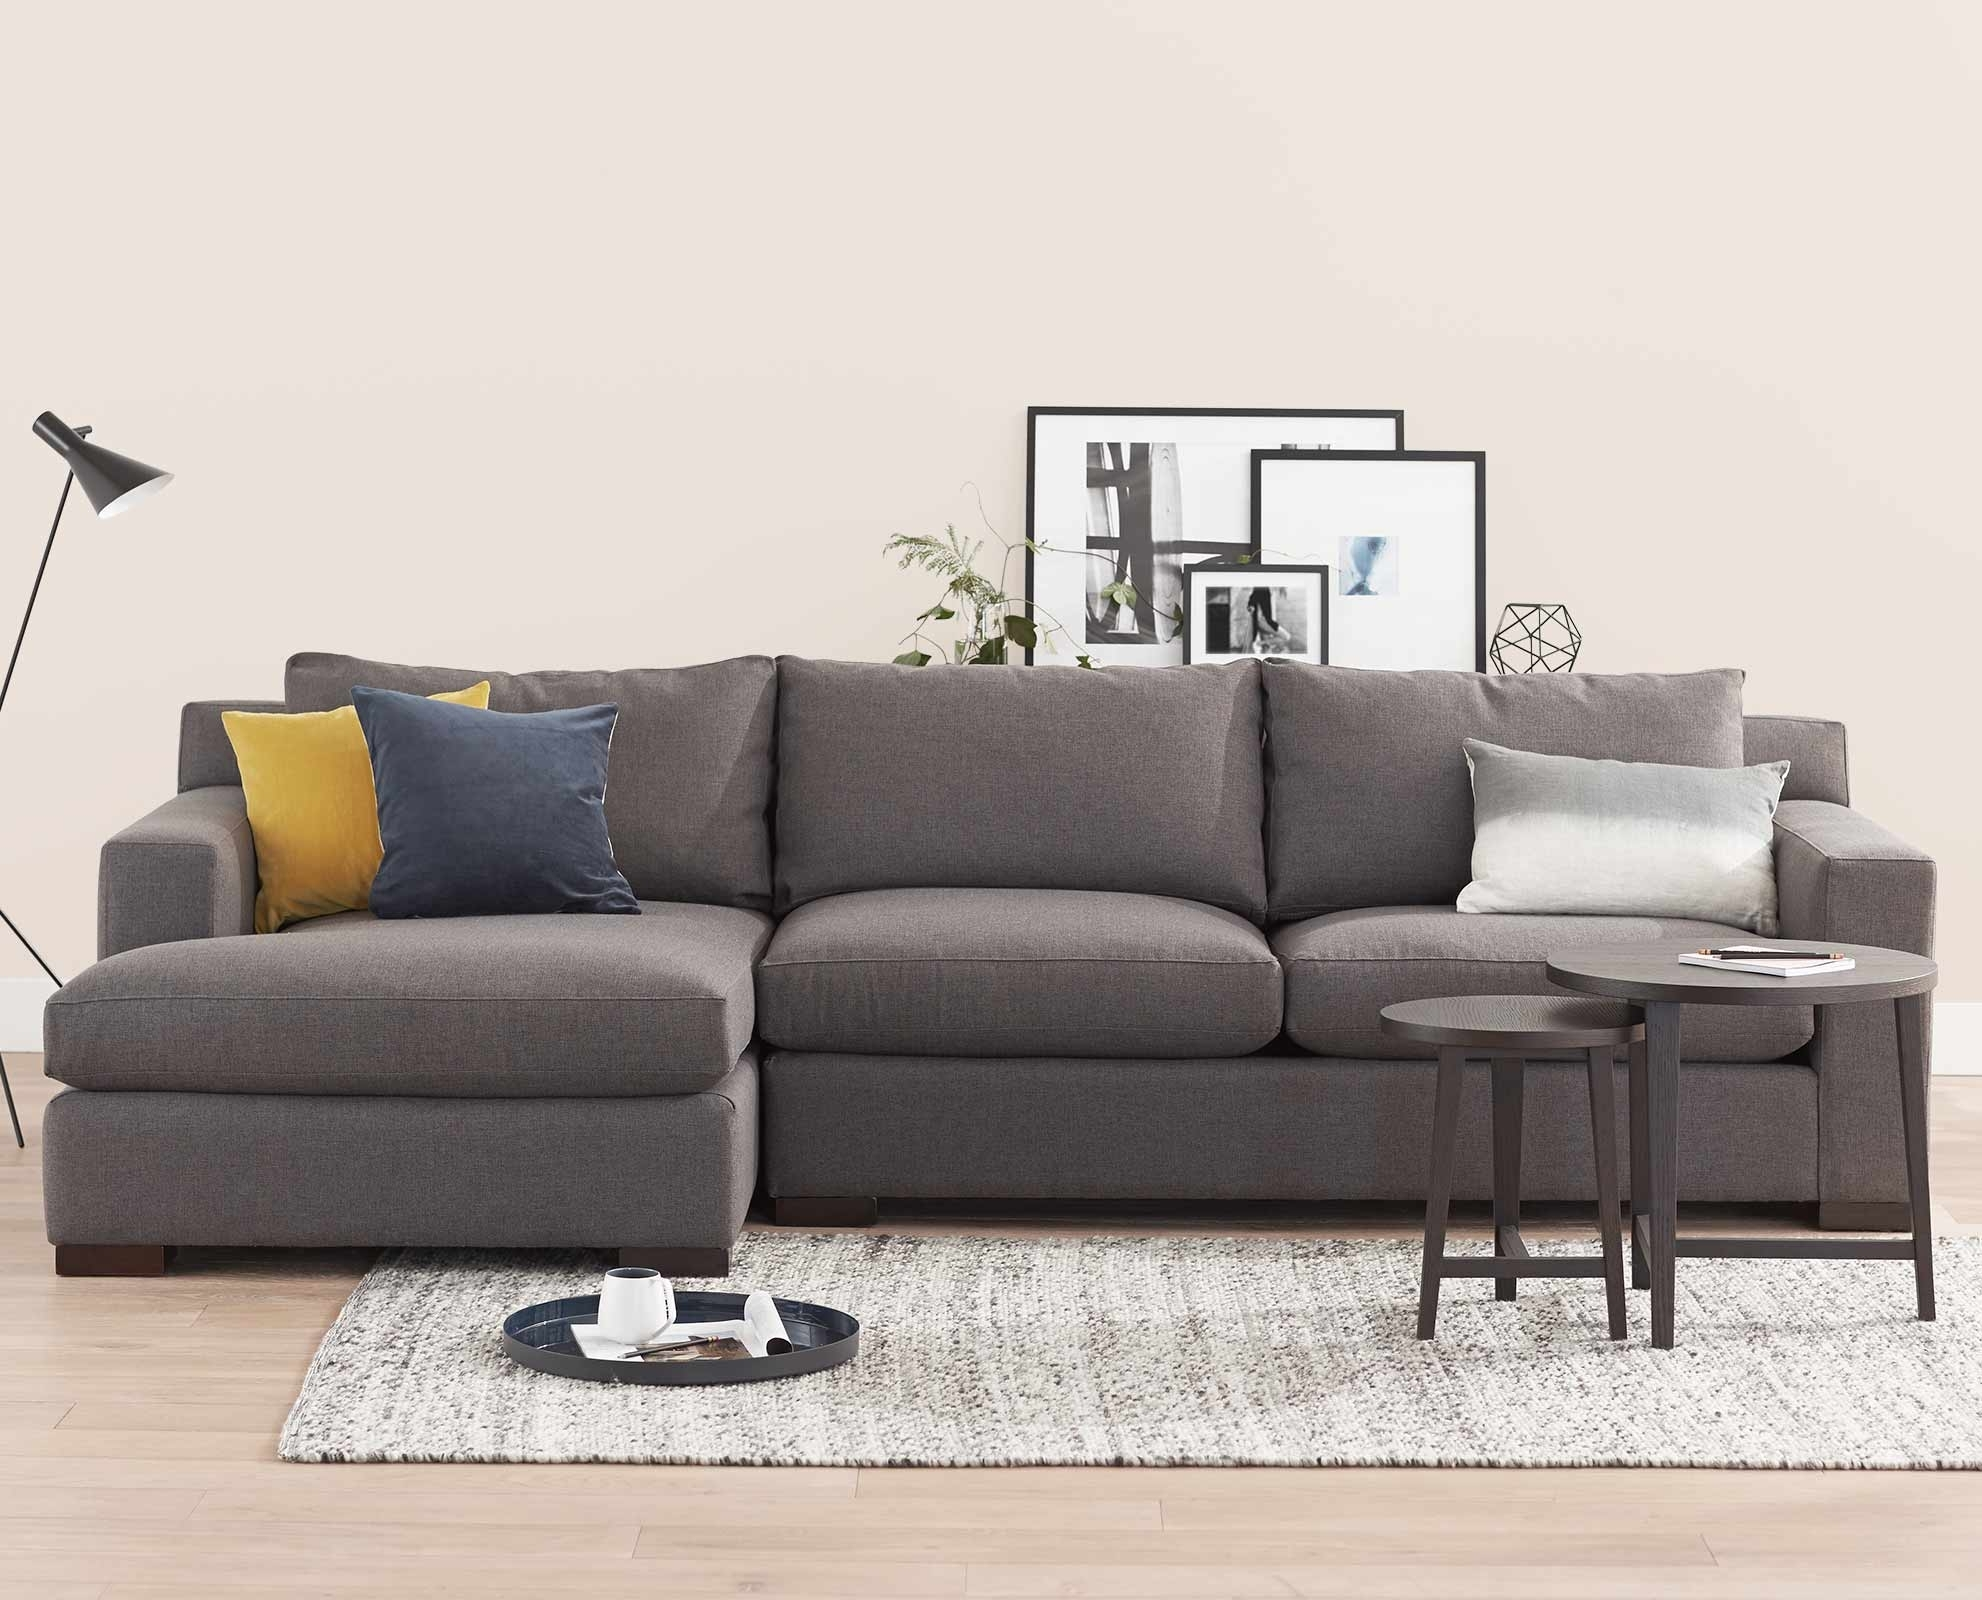 Furniture: Wonderful Selection Of Qualitydaniafurniture Pertaining To Dania Sectional Sofas (View 6 of 10)